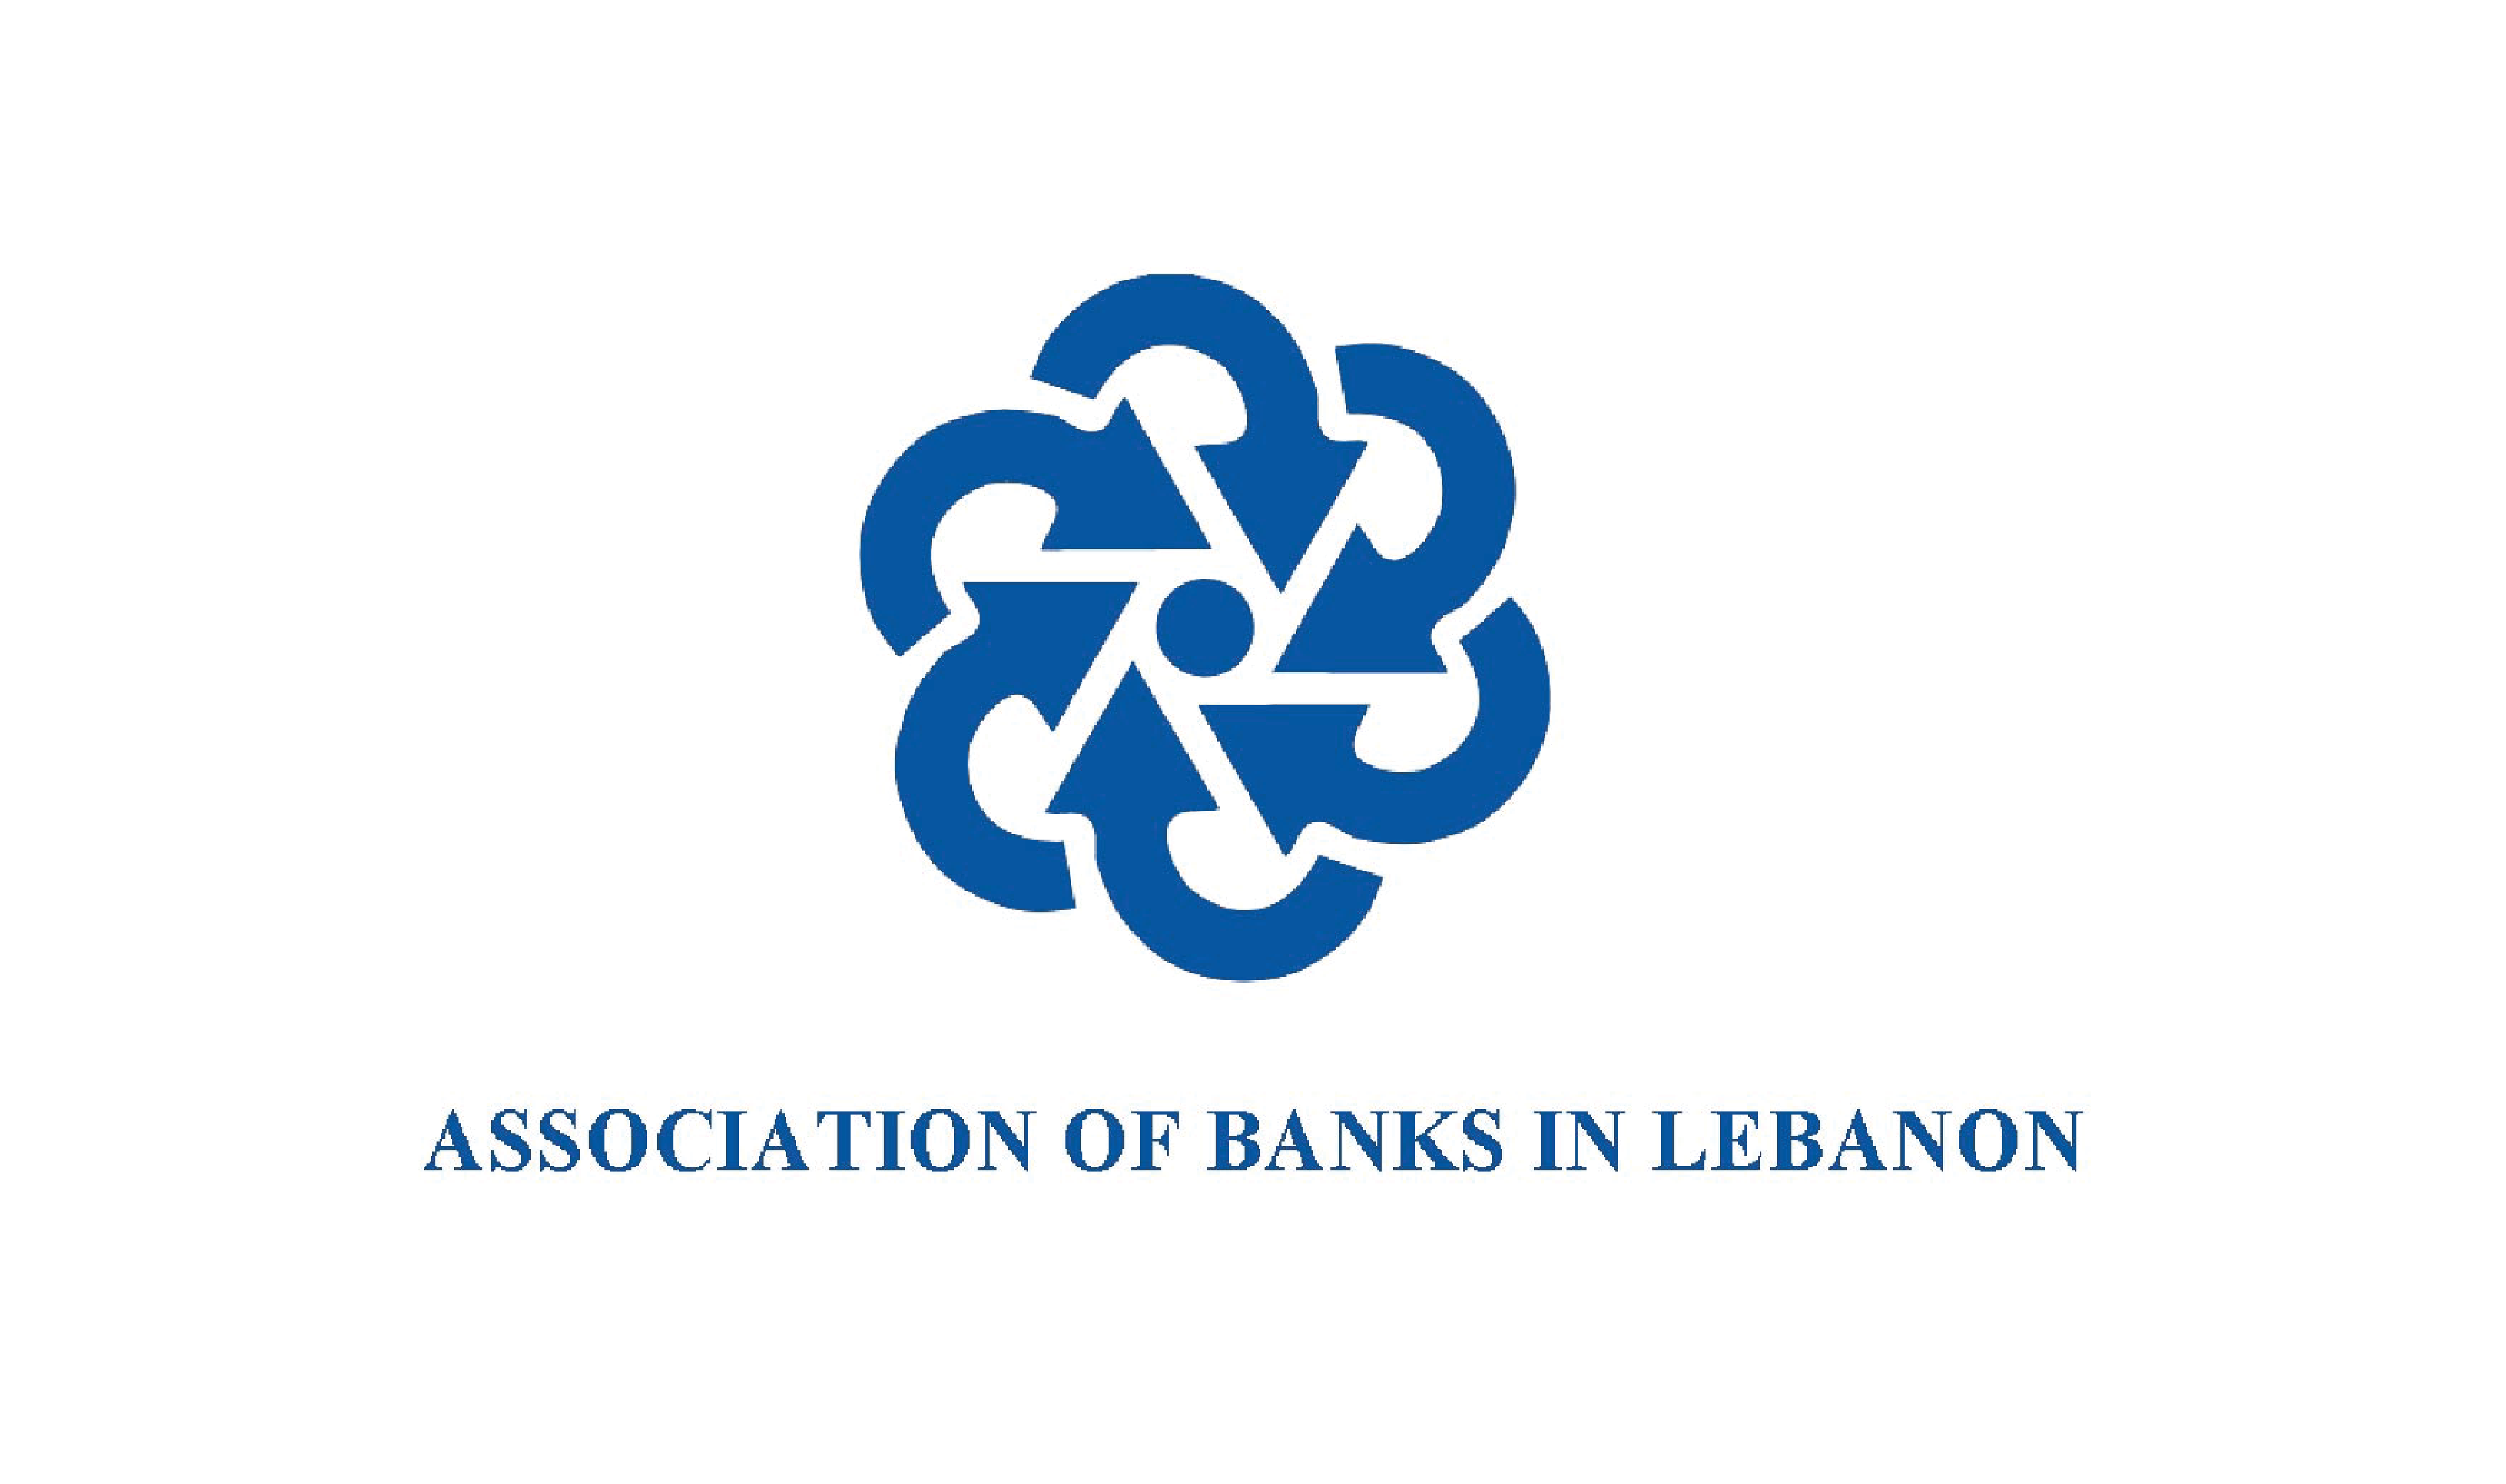 Association of Banks in Lebanon